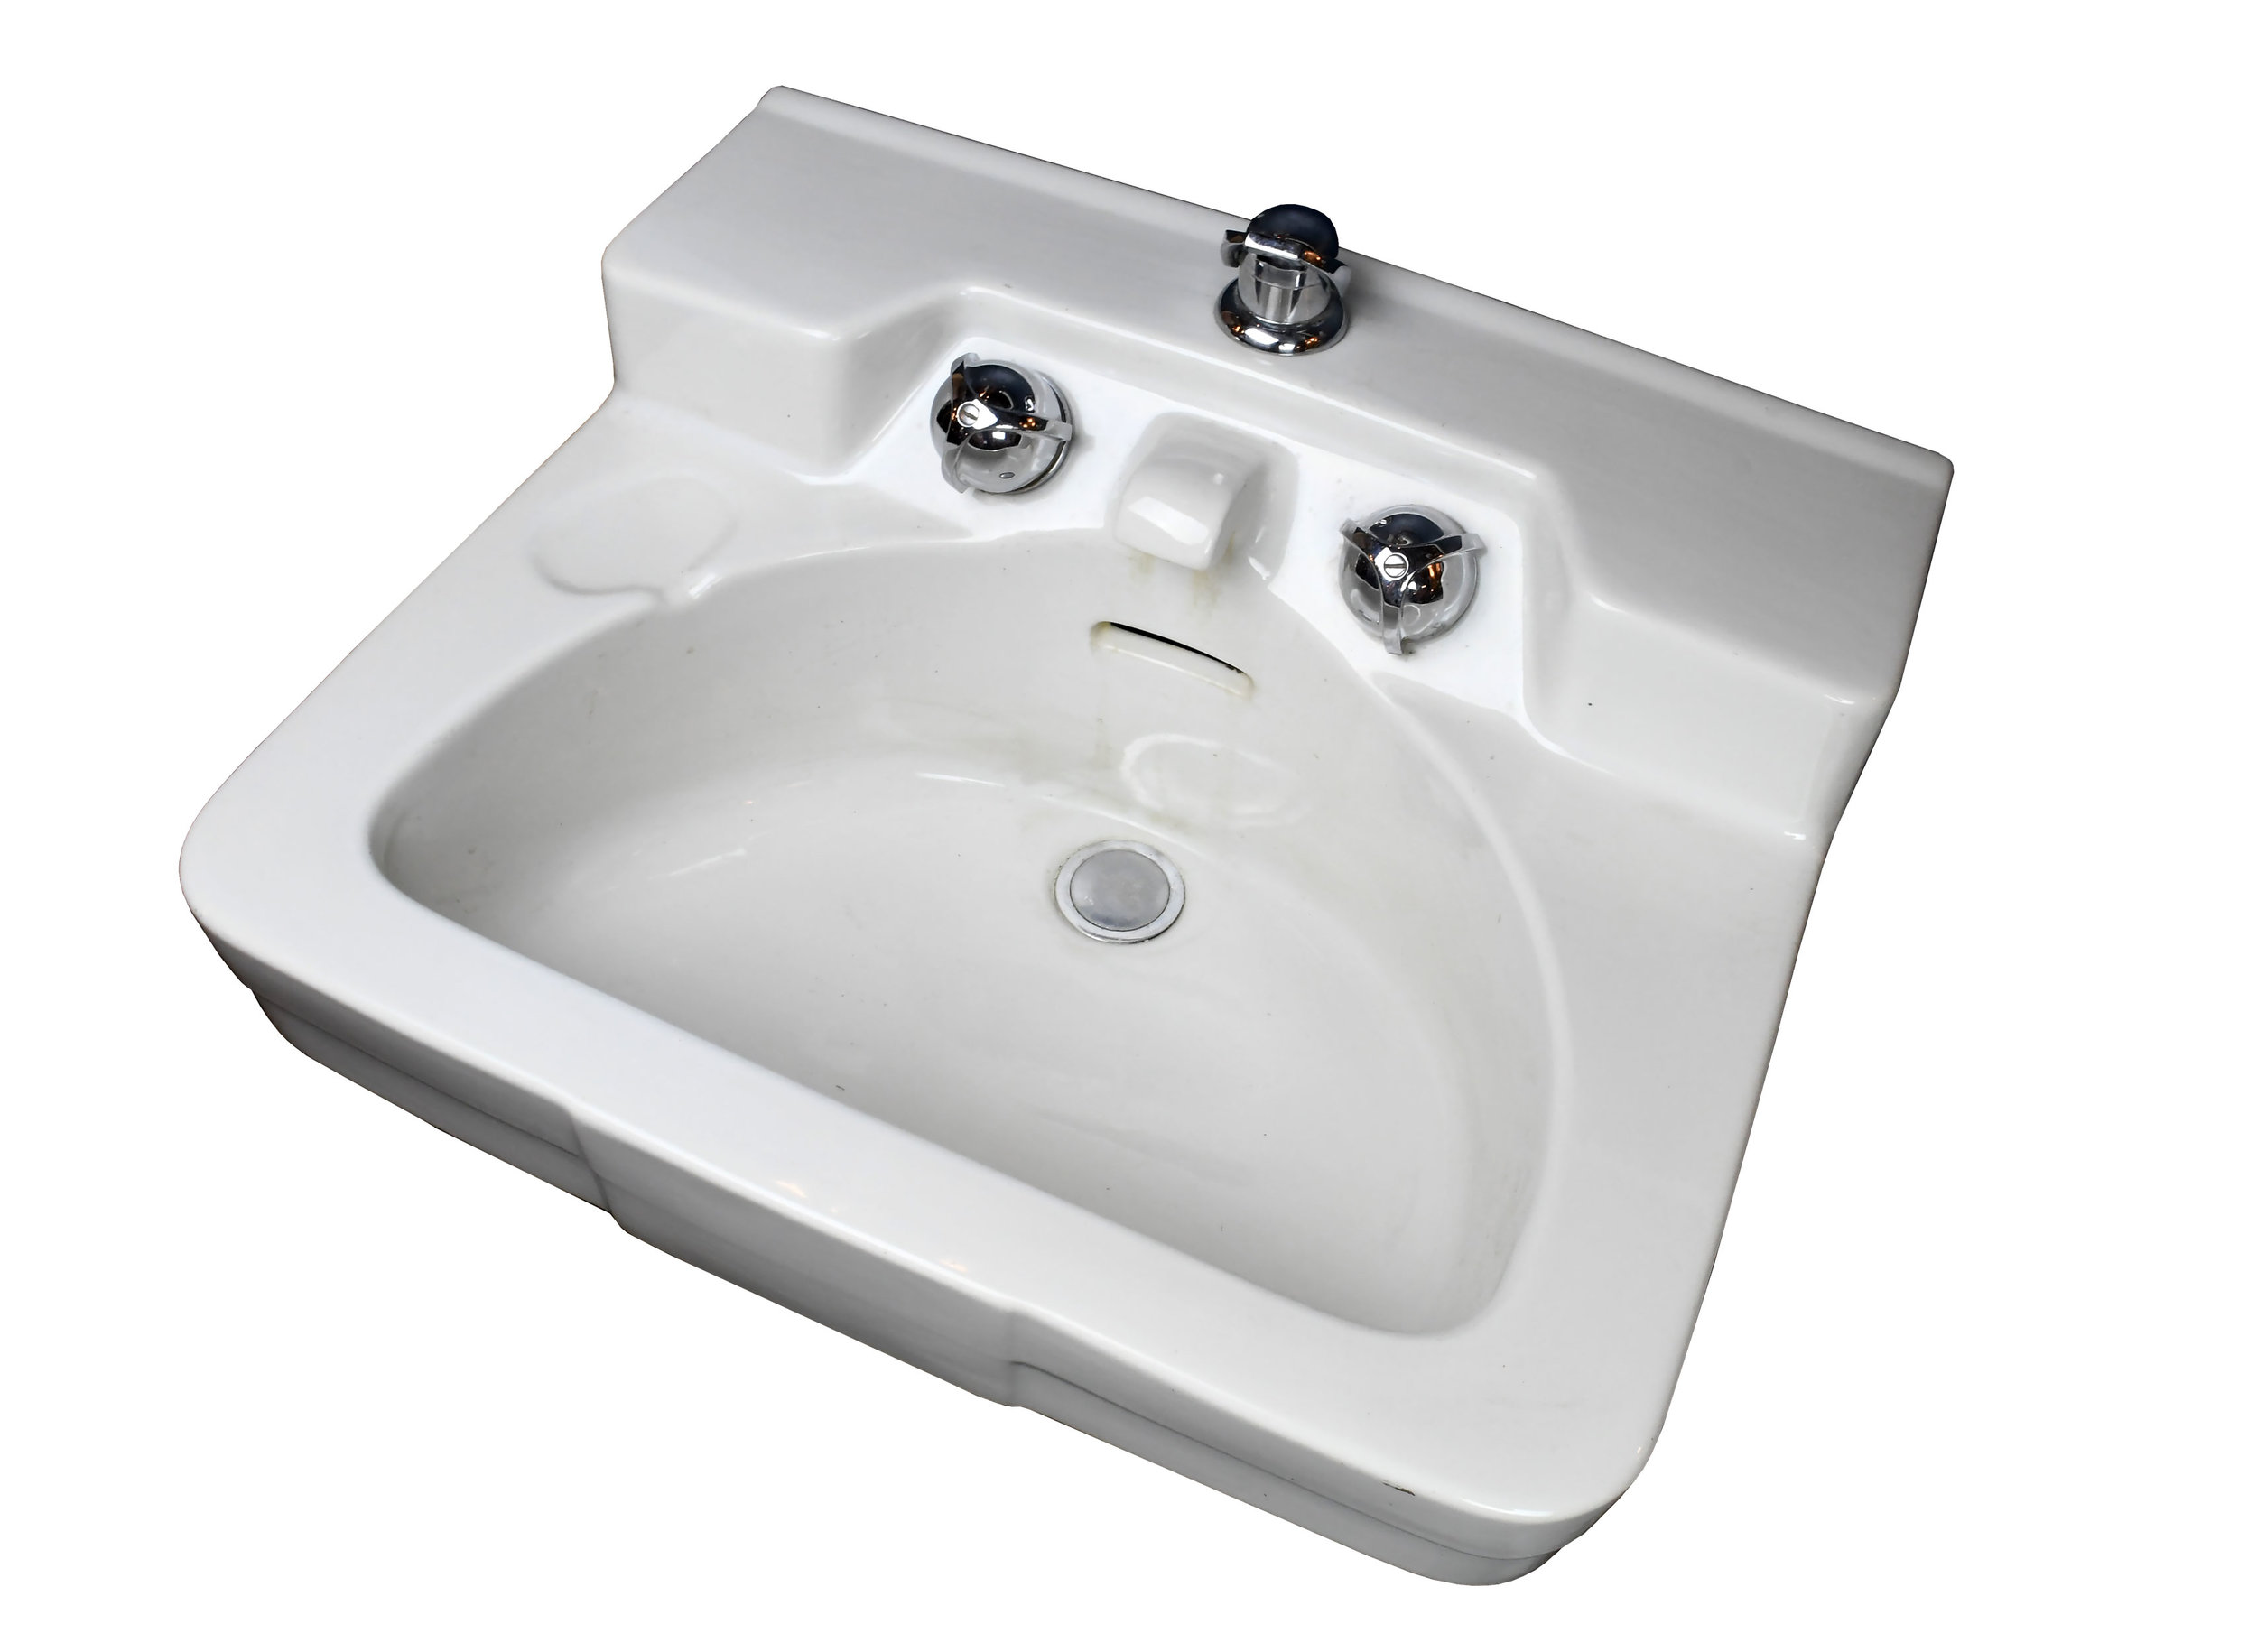 47249-1950s-wall-mount-sink-above-view.jpg